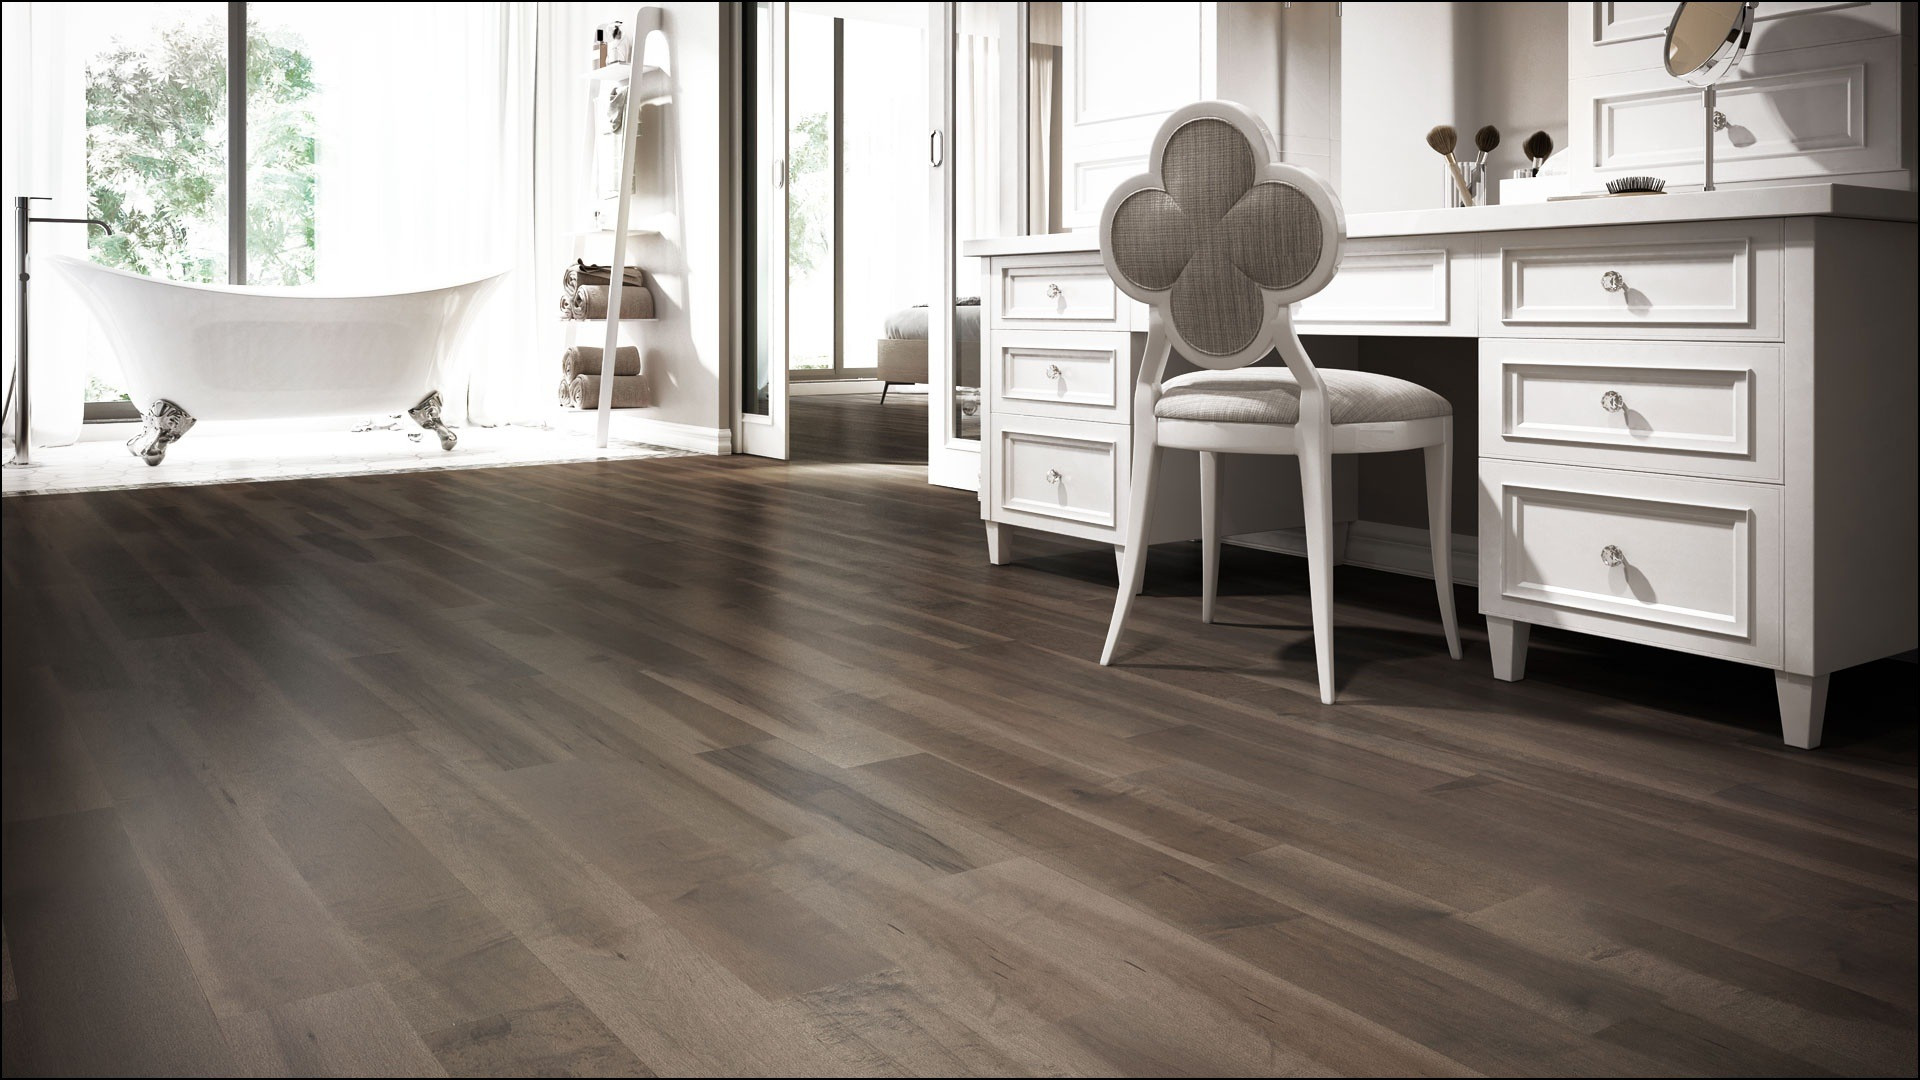 cheap hardwood flooring calgary of hardwood flooring suppliers france flooring ideas throughout hardwood flooring pictures in homes images black and white laminate flooring beautiful splendid exterior of hardwood